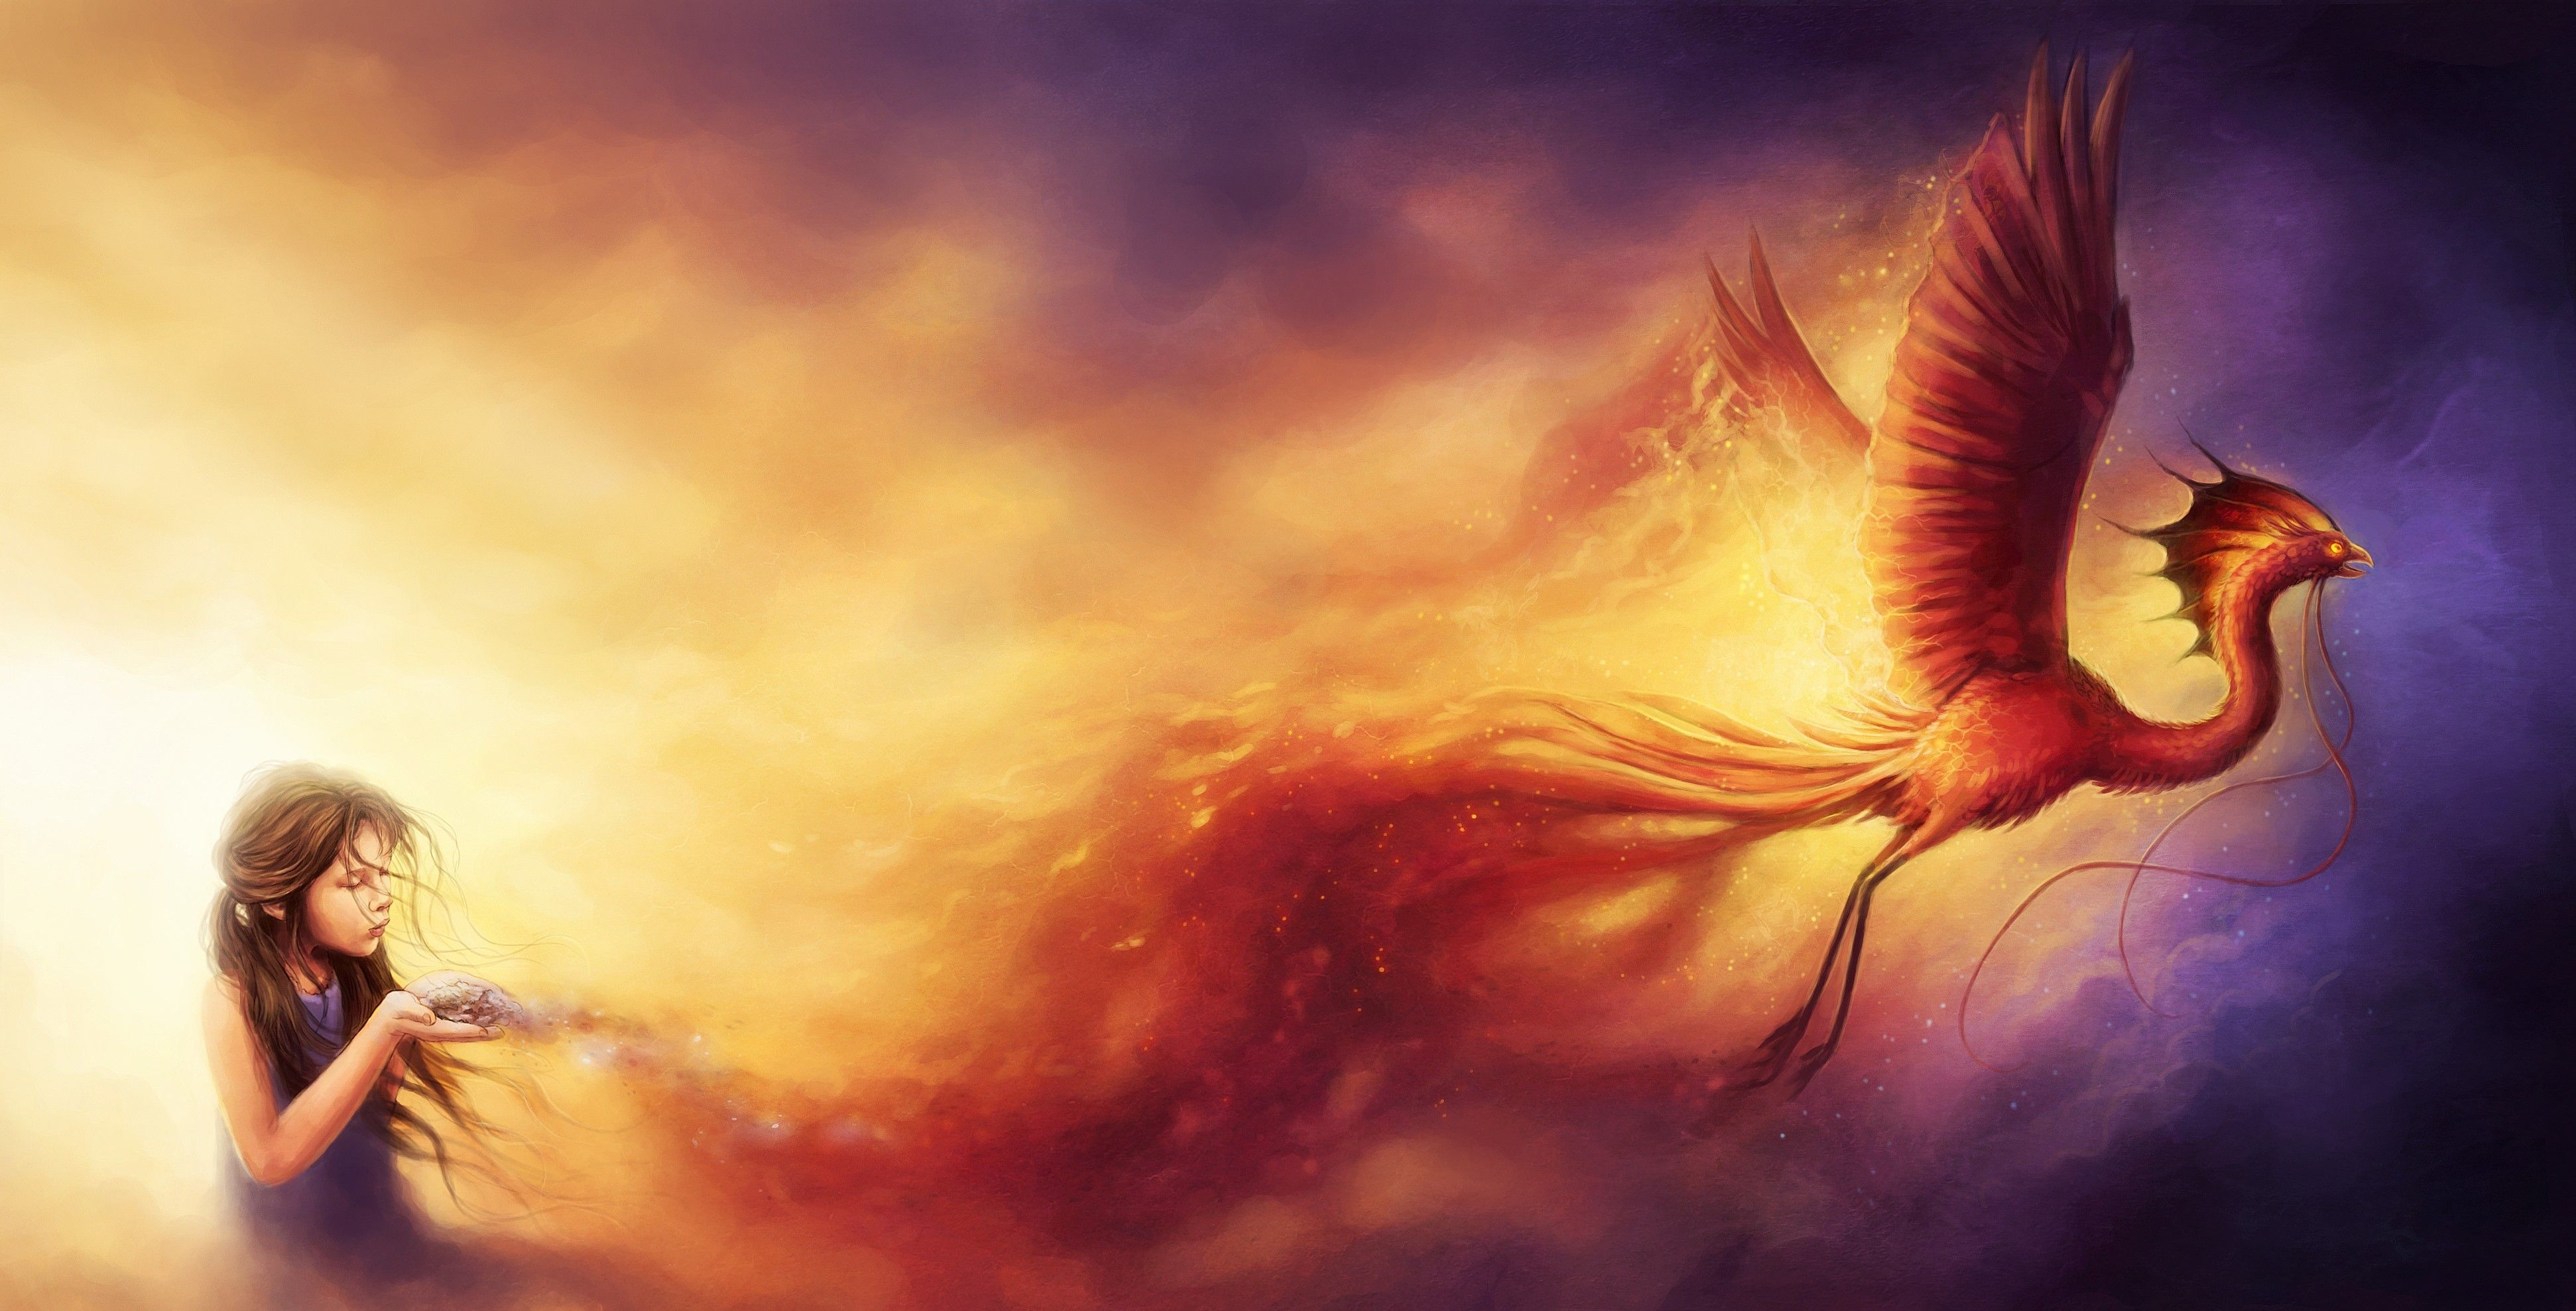 phoenix watercolor - Google zoeken | Other that I love | Pinterest ... for Girl Holding Fire Drawing  569ane